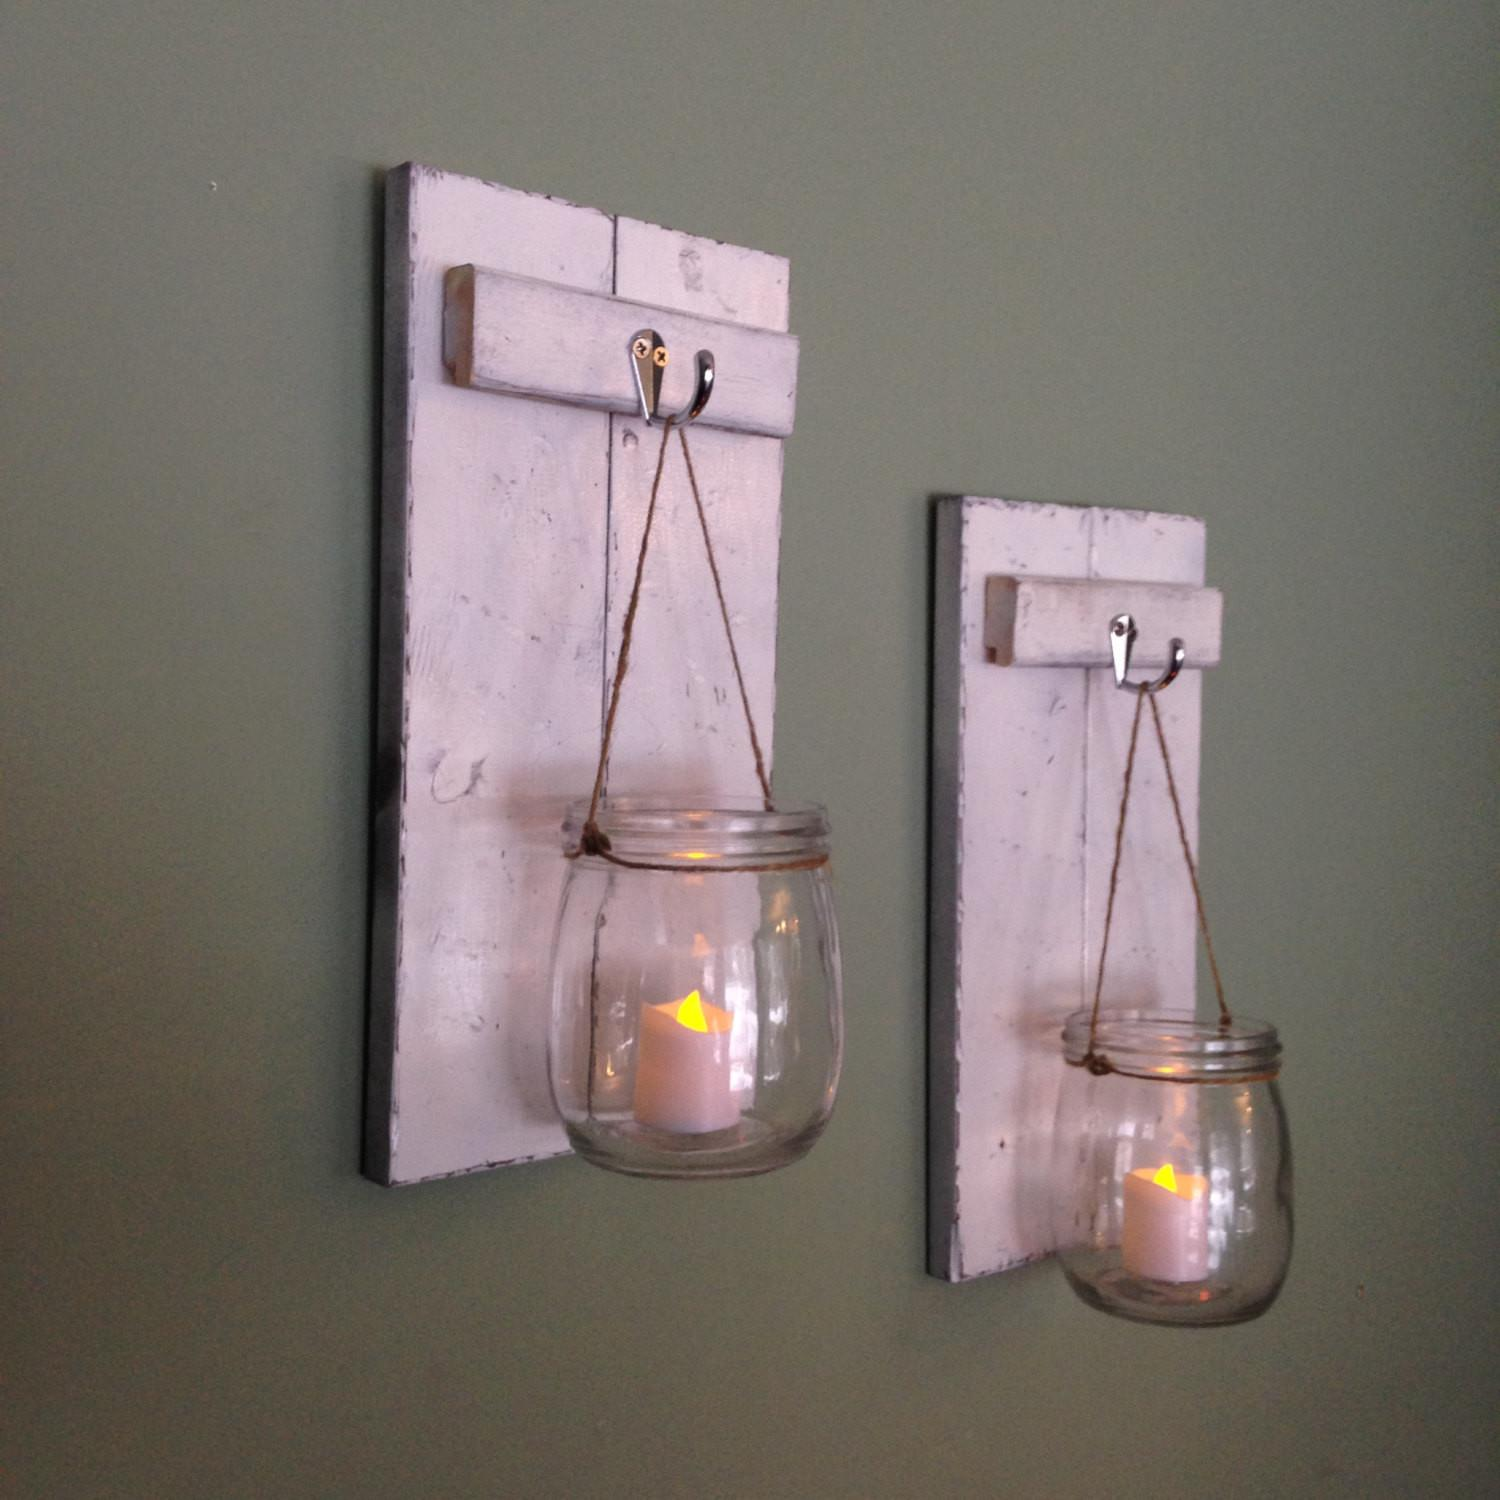 Wooden Candle Holder Mason Jar Wall Sconce Rustic Covedecor